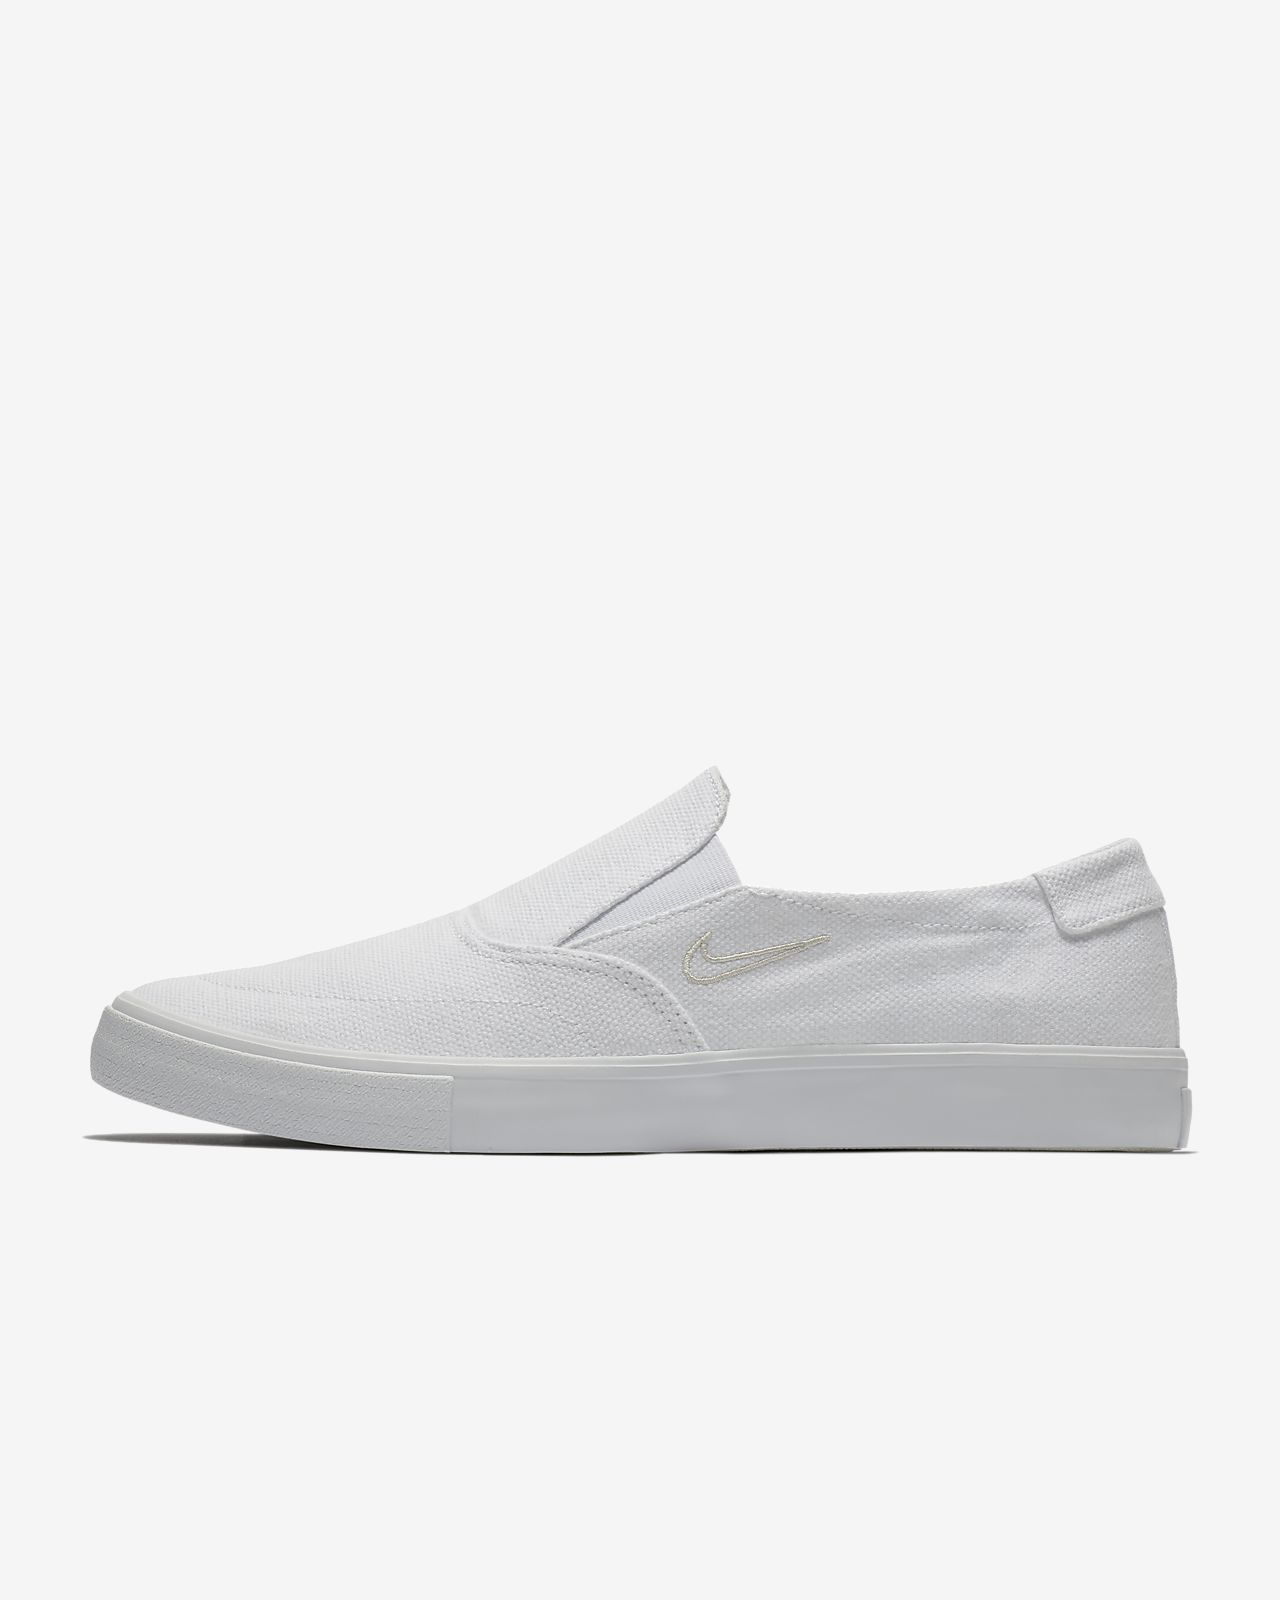 c09b215389d Nike SB Portmore II Solarsoft Slip-on Men s Skateboarding Shoe. Nike.com